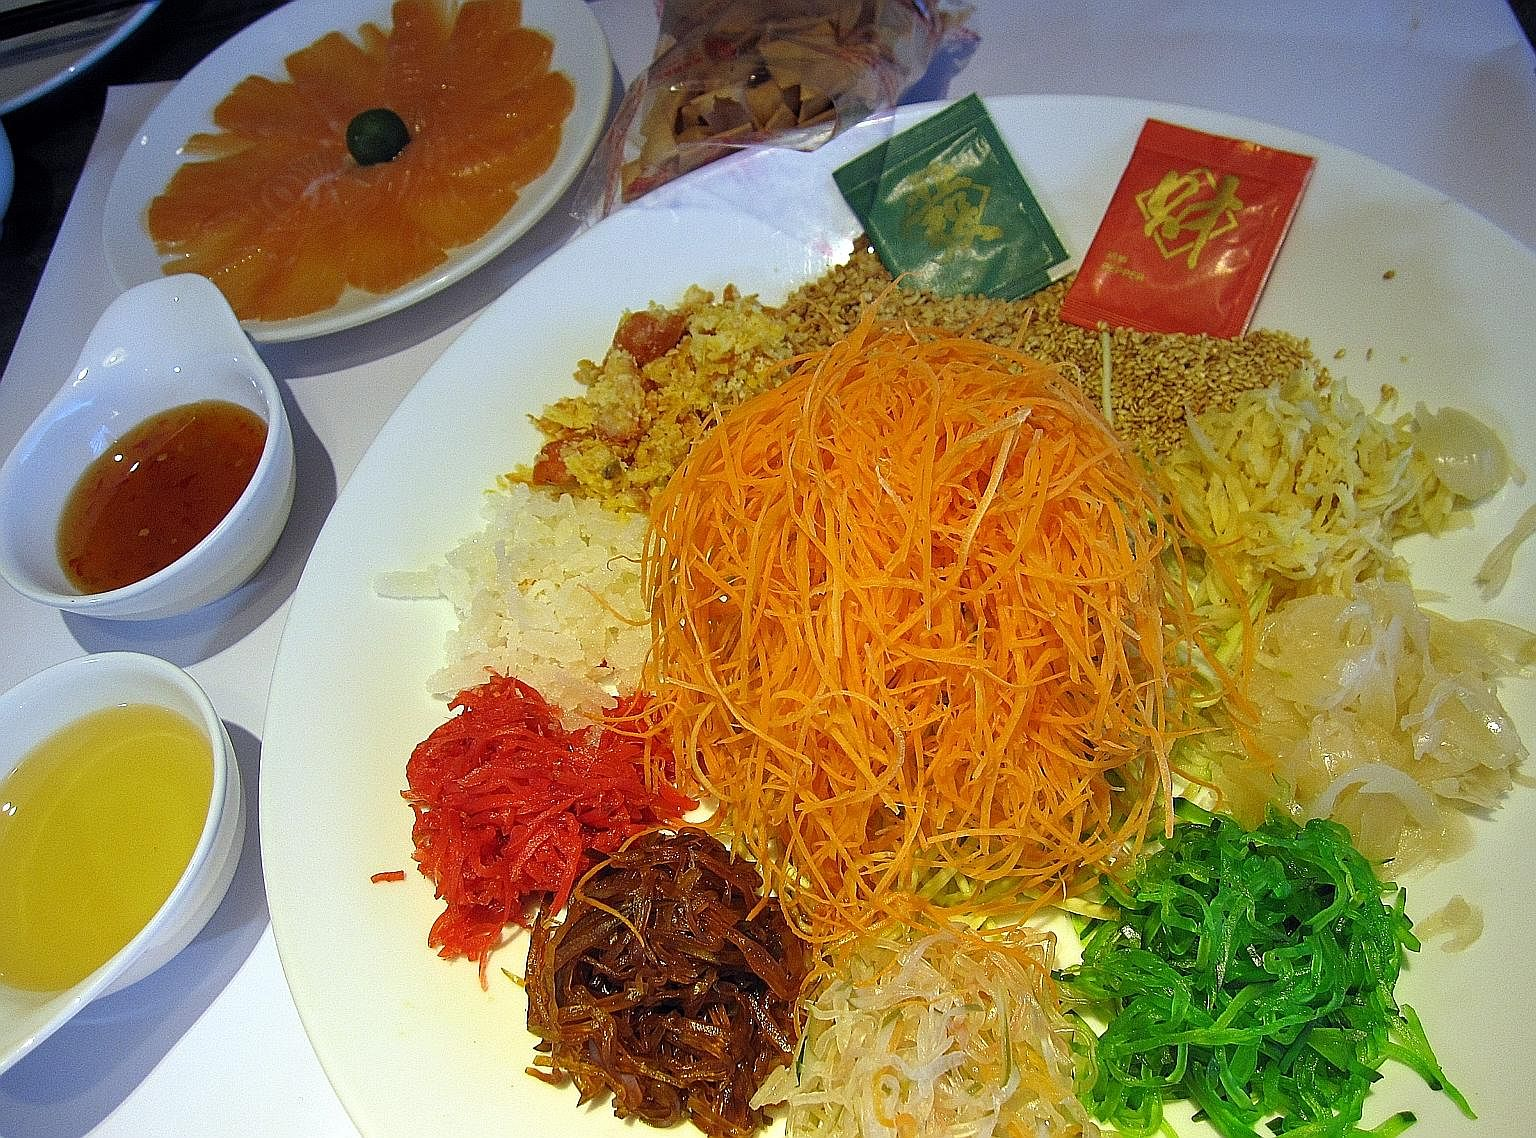 The raw fish salad was brought to Singapore by Cantonese immigrants in the 1940s, and was later popularised as a Chinese New Year dish.